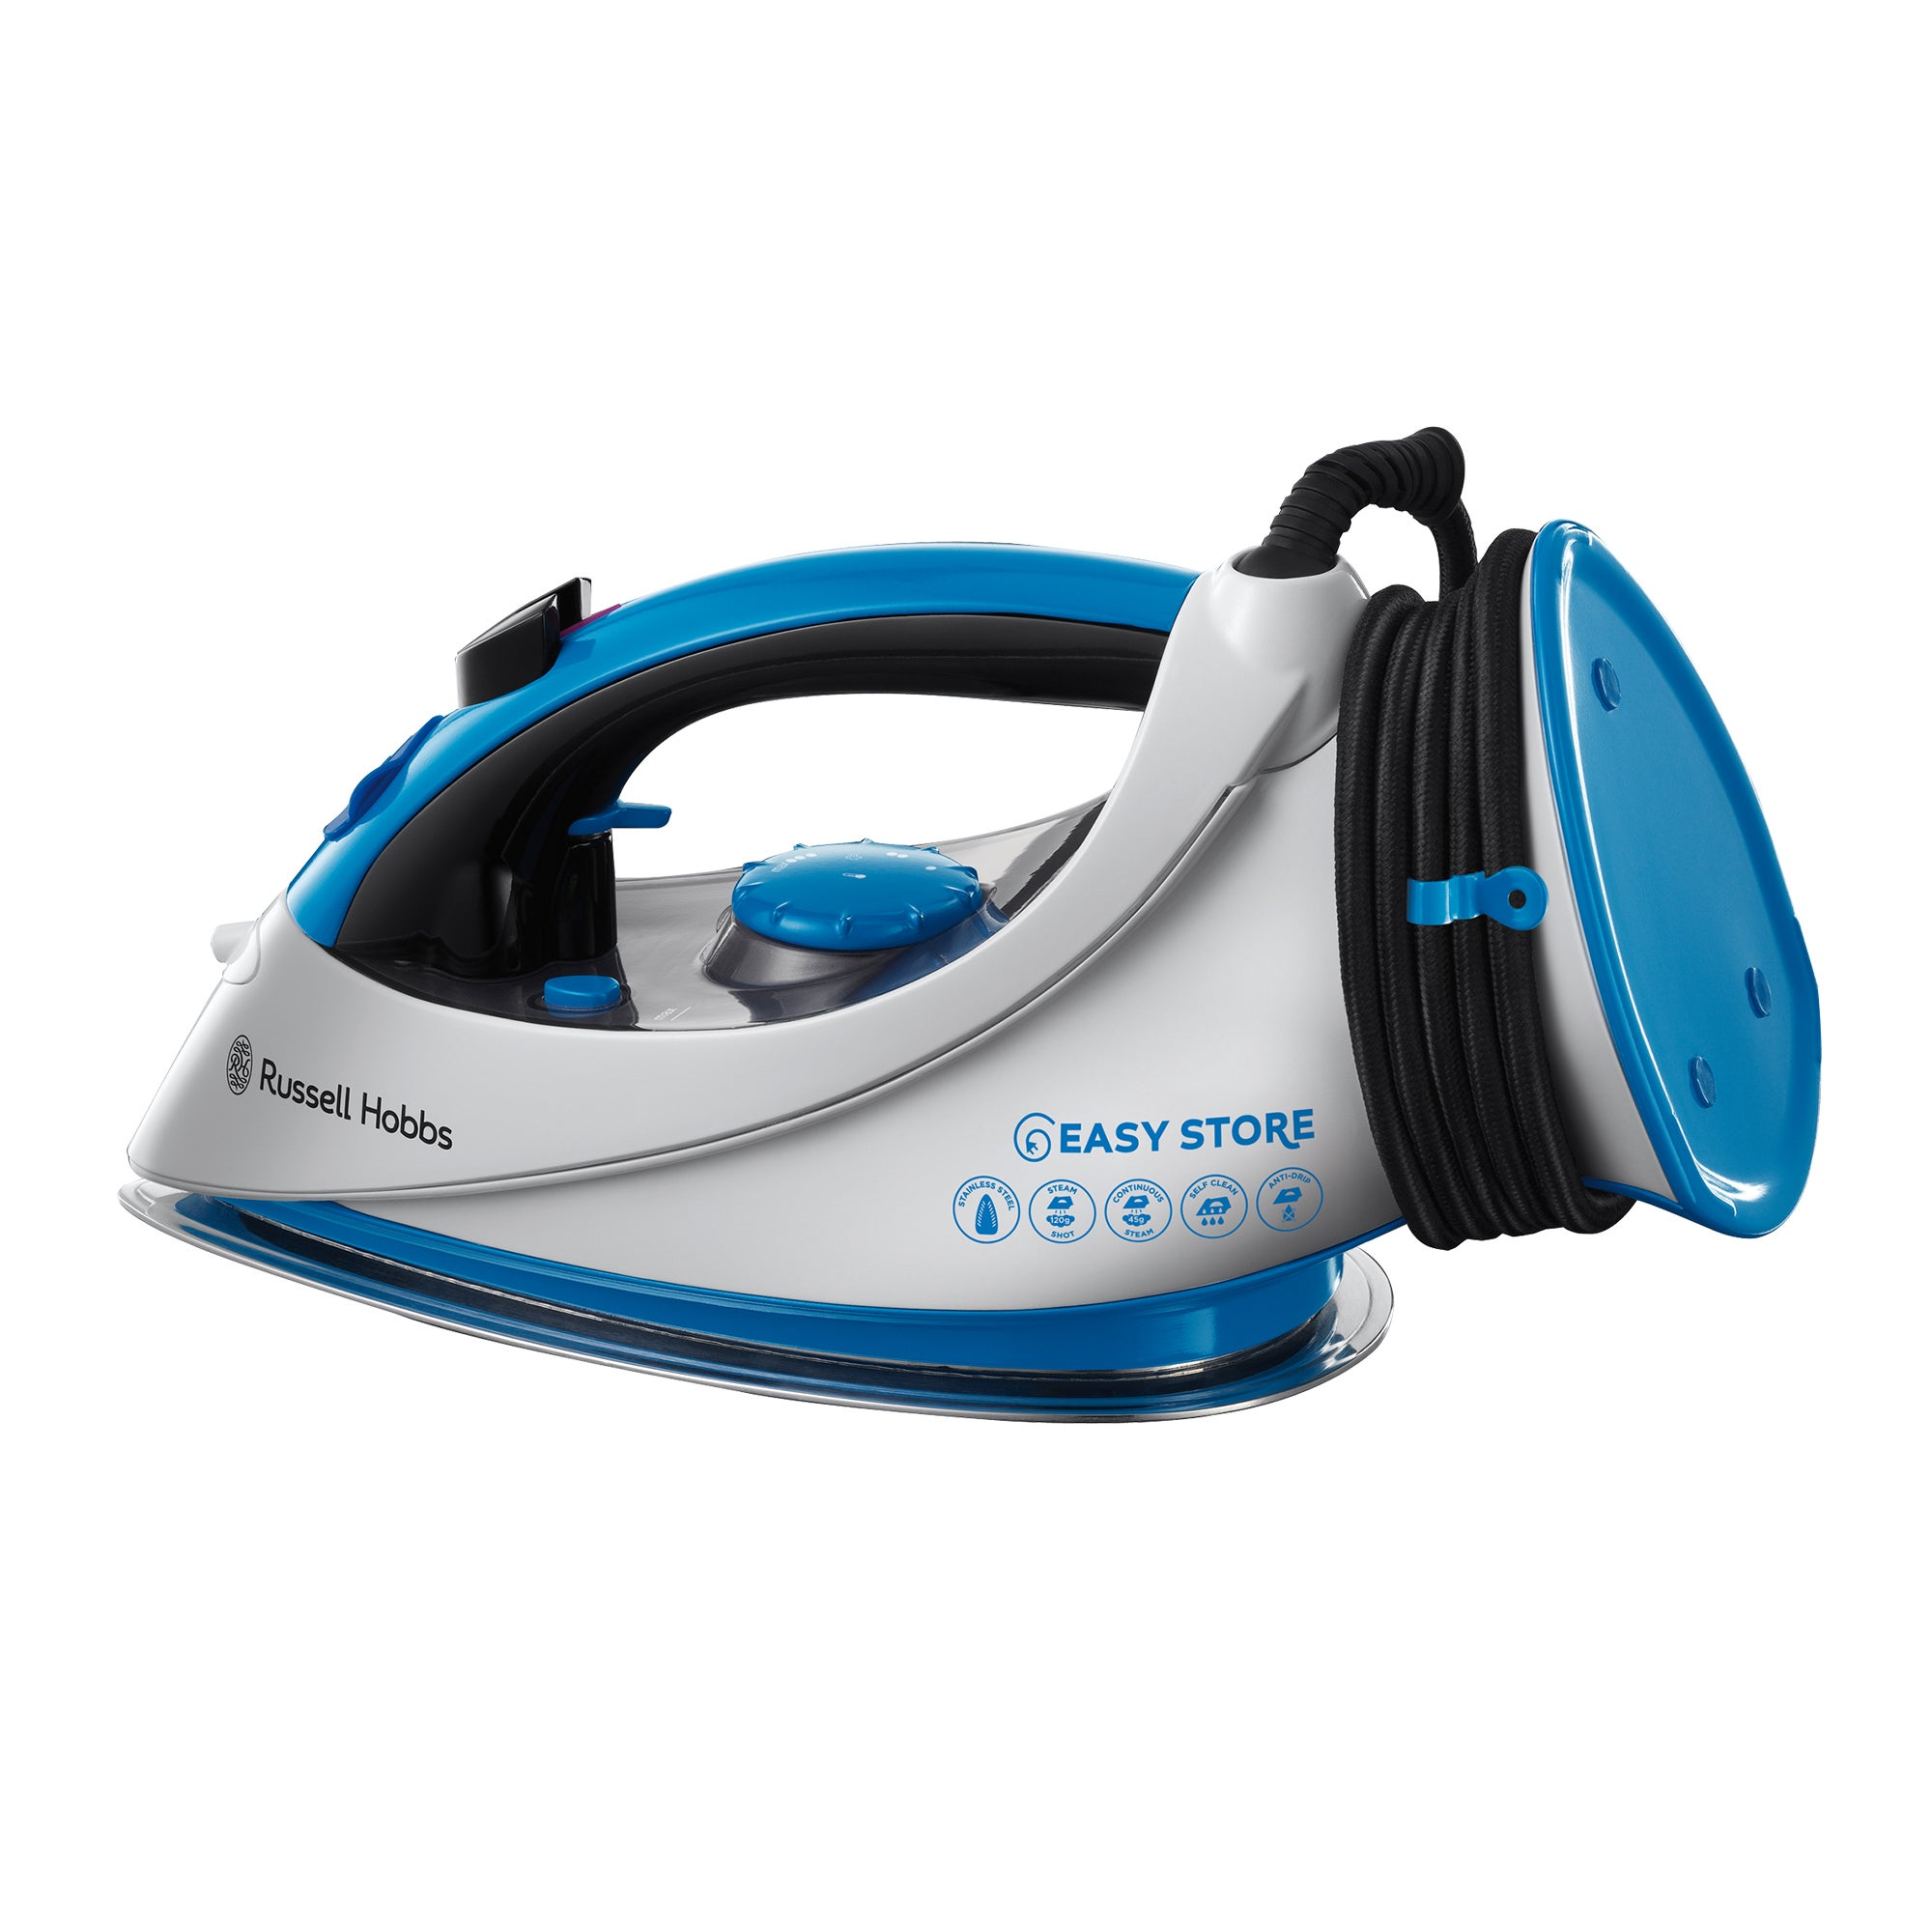 Russell Hobbs 18616 2400w Easy Wrap and Clip Blue Ceramic Iron